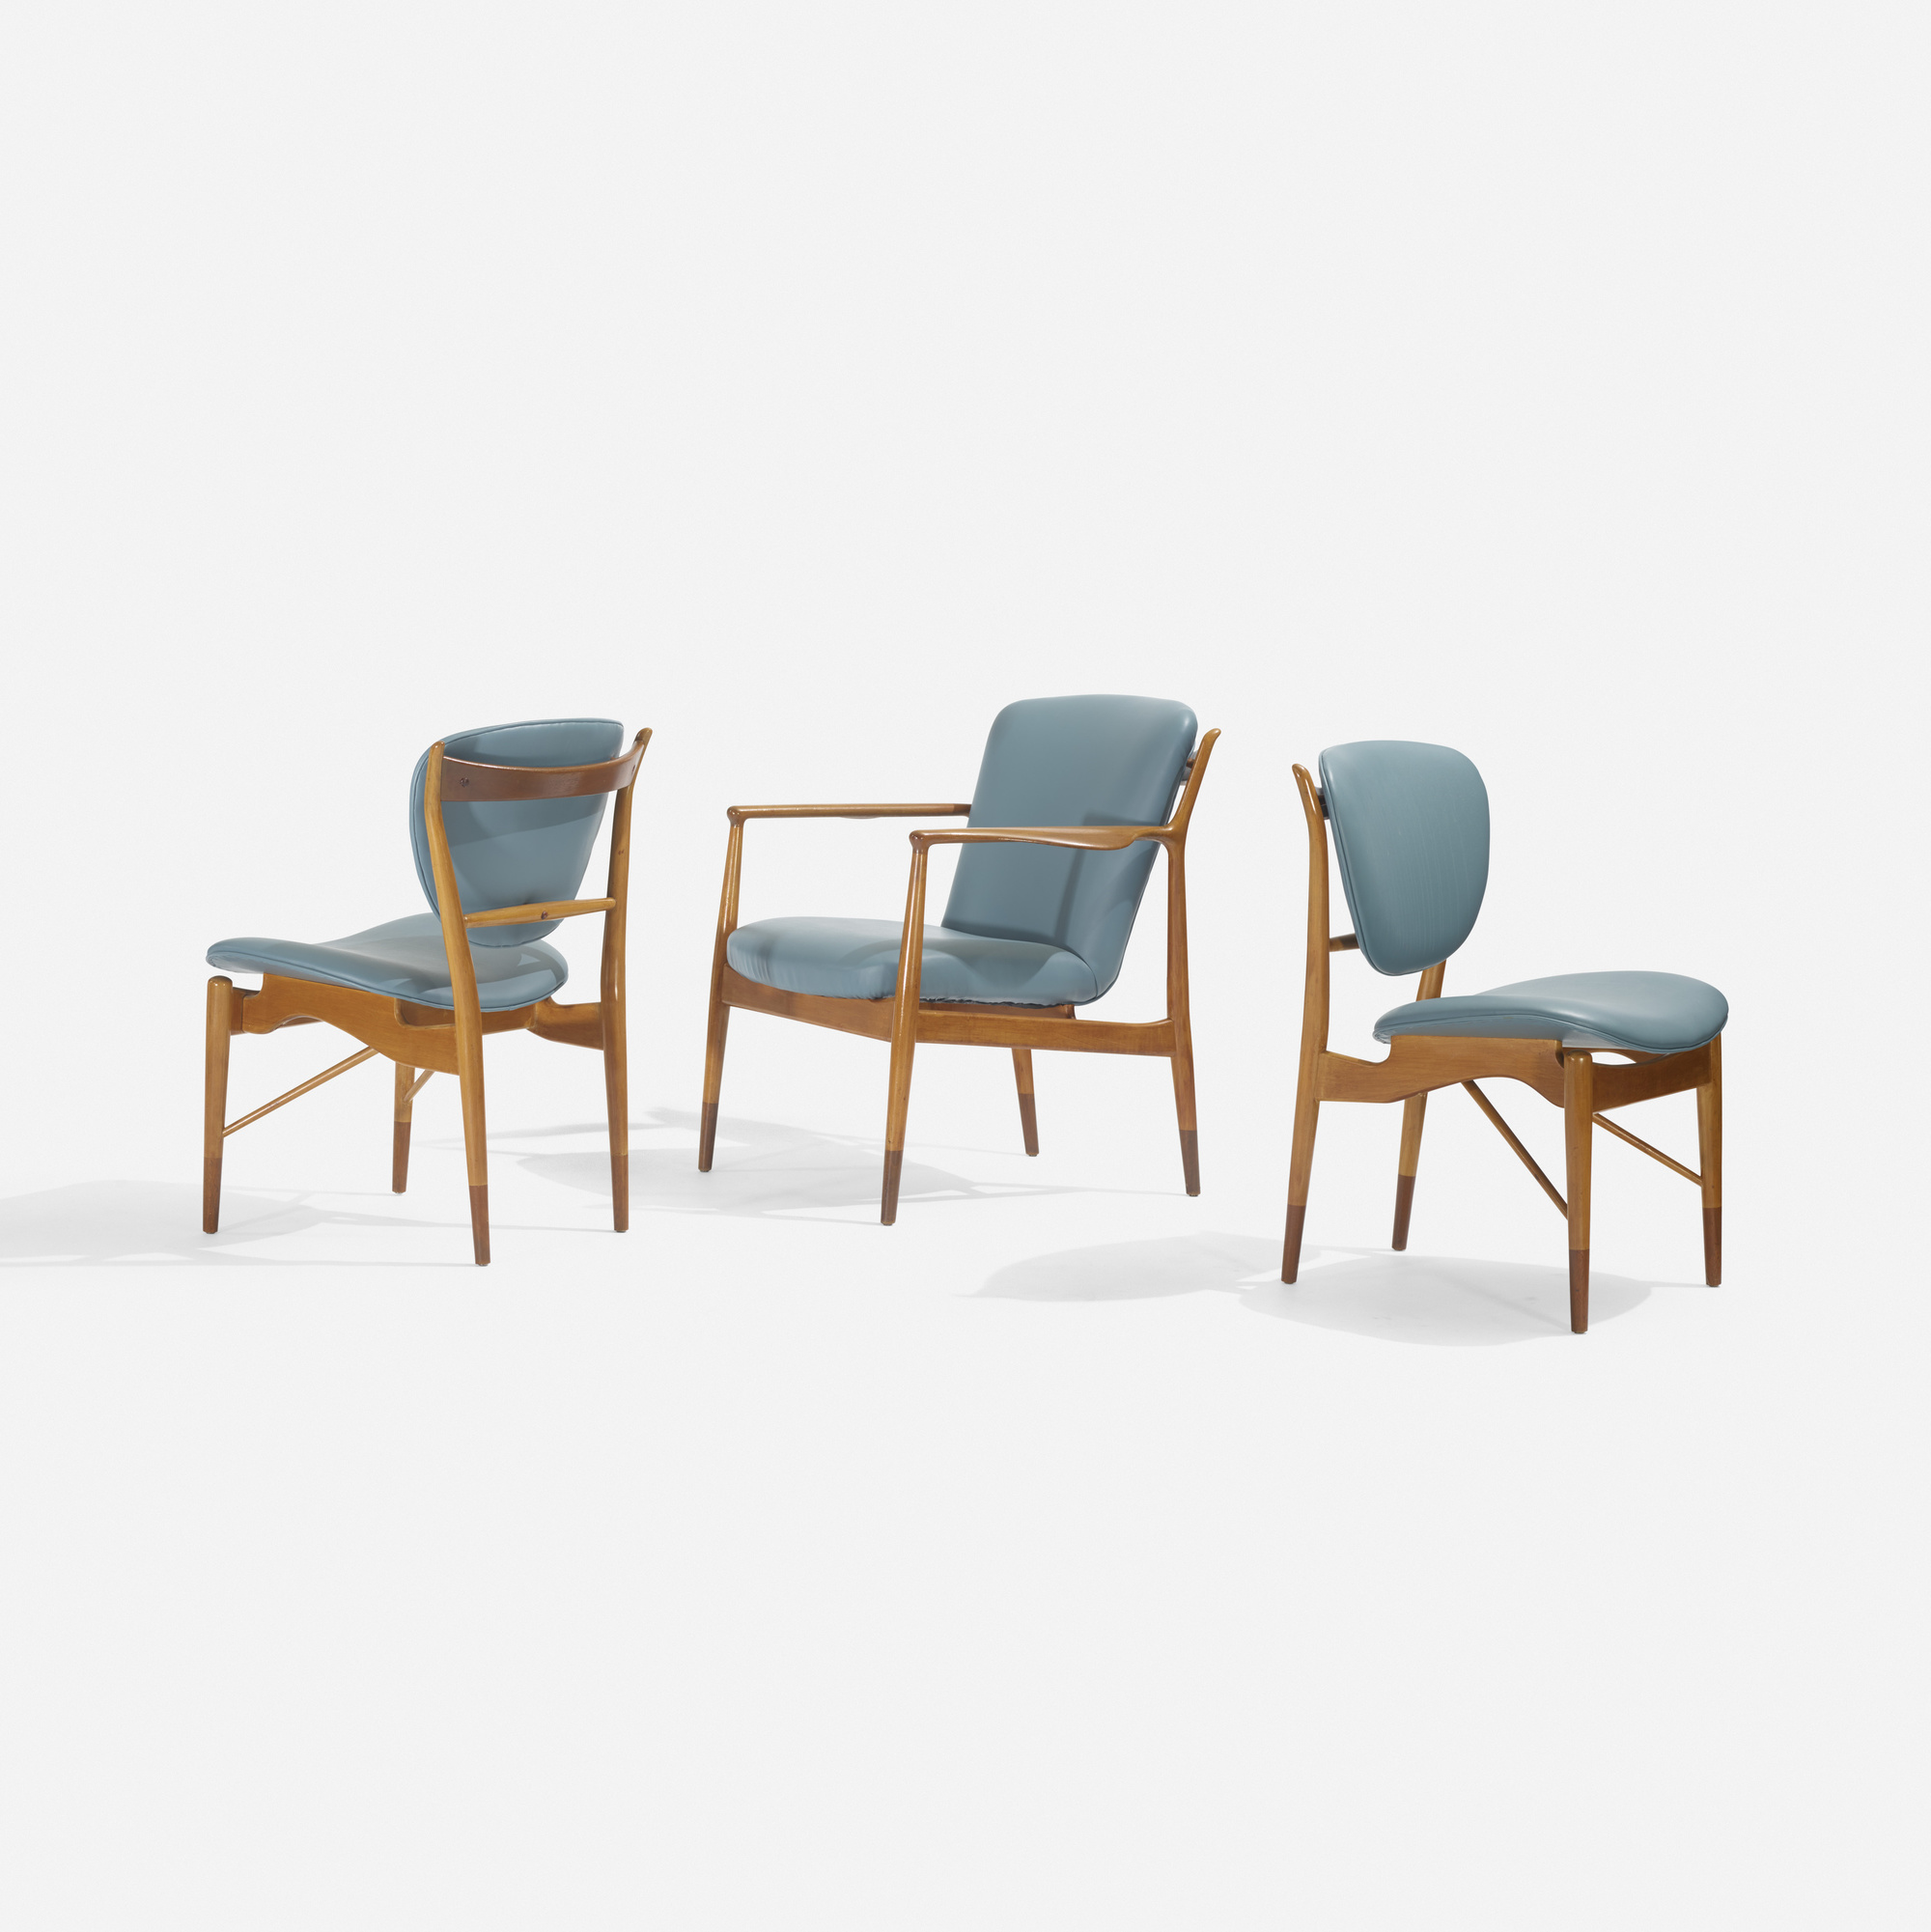 133 Finn Juhl / set of three chairs (1 of 3)  sc 1 st  Wright Auction : three chairs - lorbestier.org